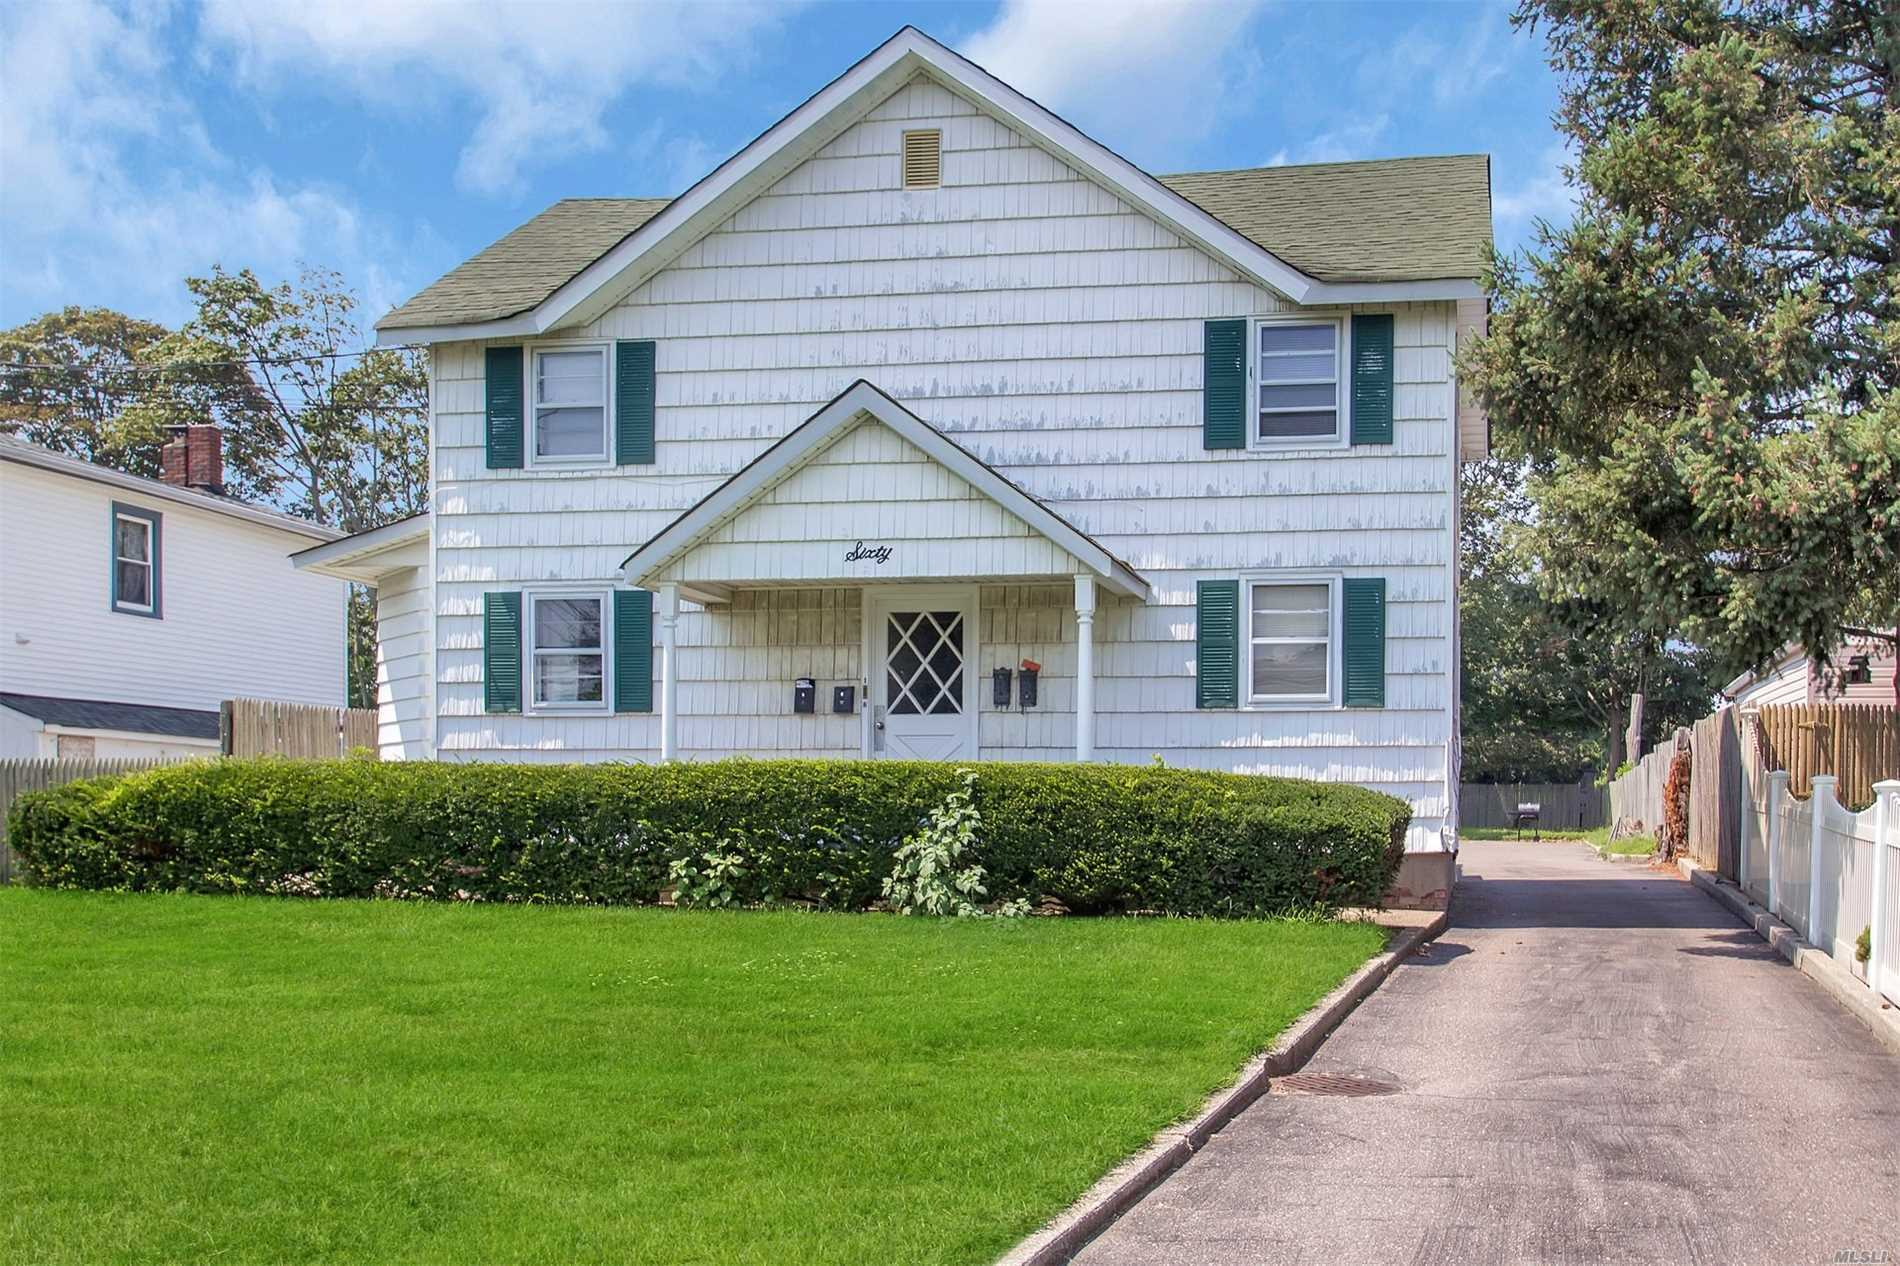 60 Bay Ave - Patchogue, New York